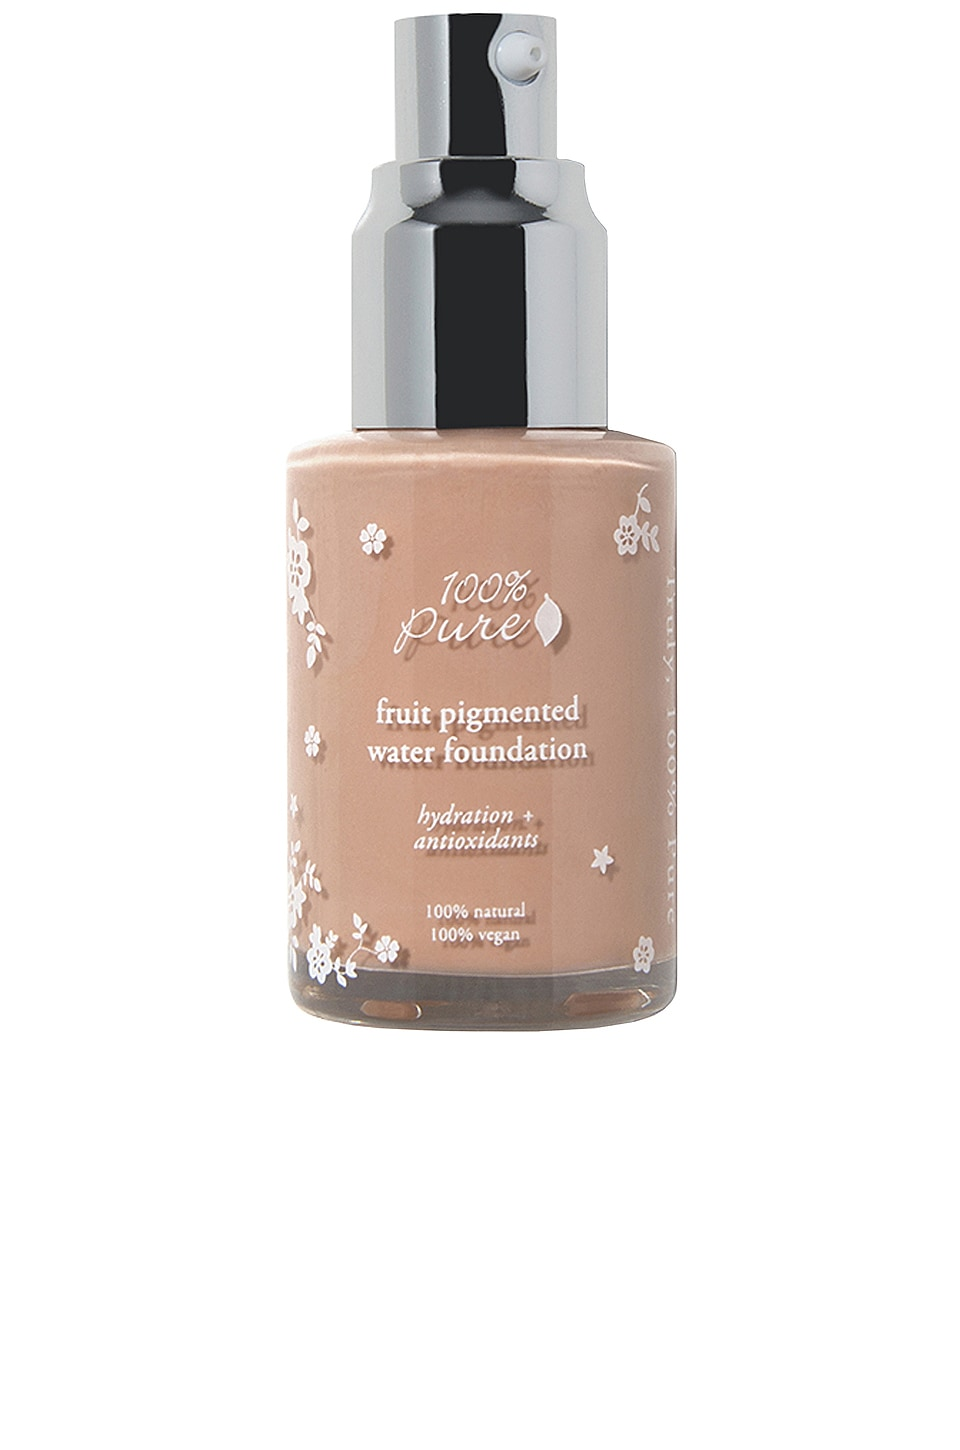 Fruit Pigmented Water Foundation